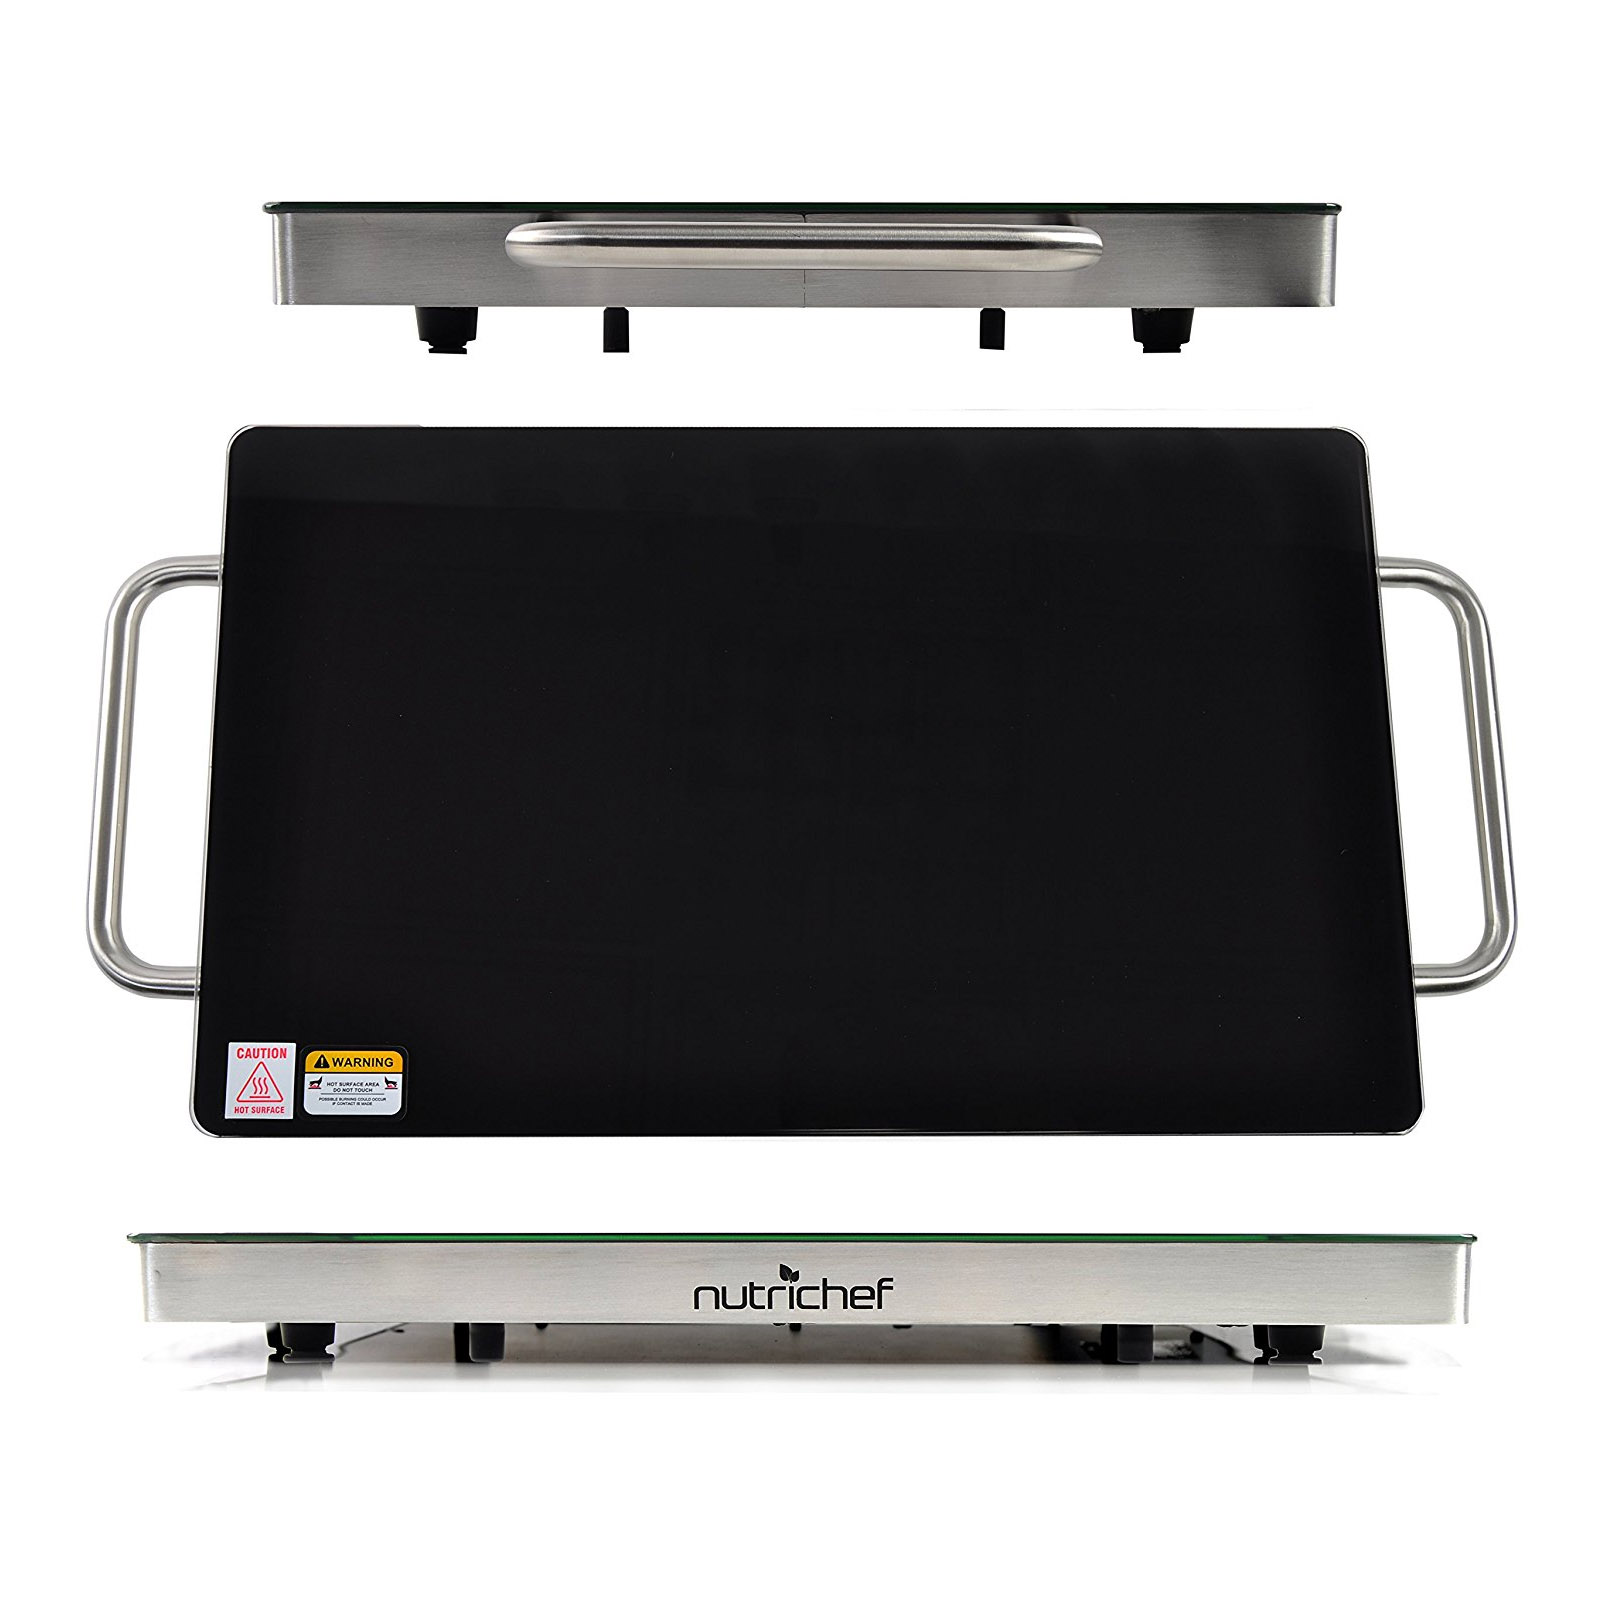 "NutriChef Electric Warming Tray / Food Warmer with Non-Stick Heat-Resistant Glass Plate - 14.5"" x 8.6"" Heating Surface"